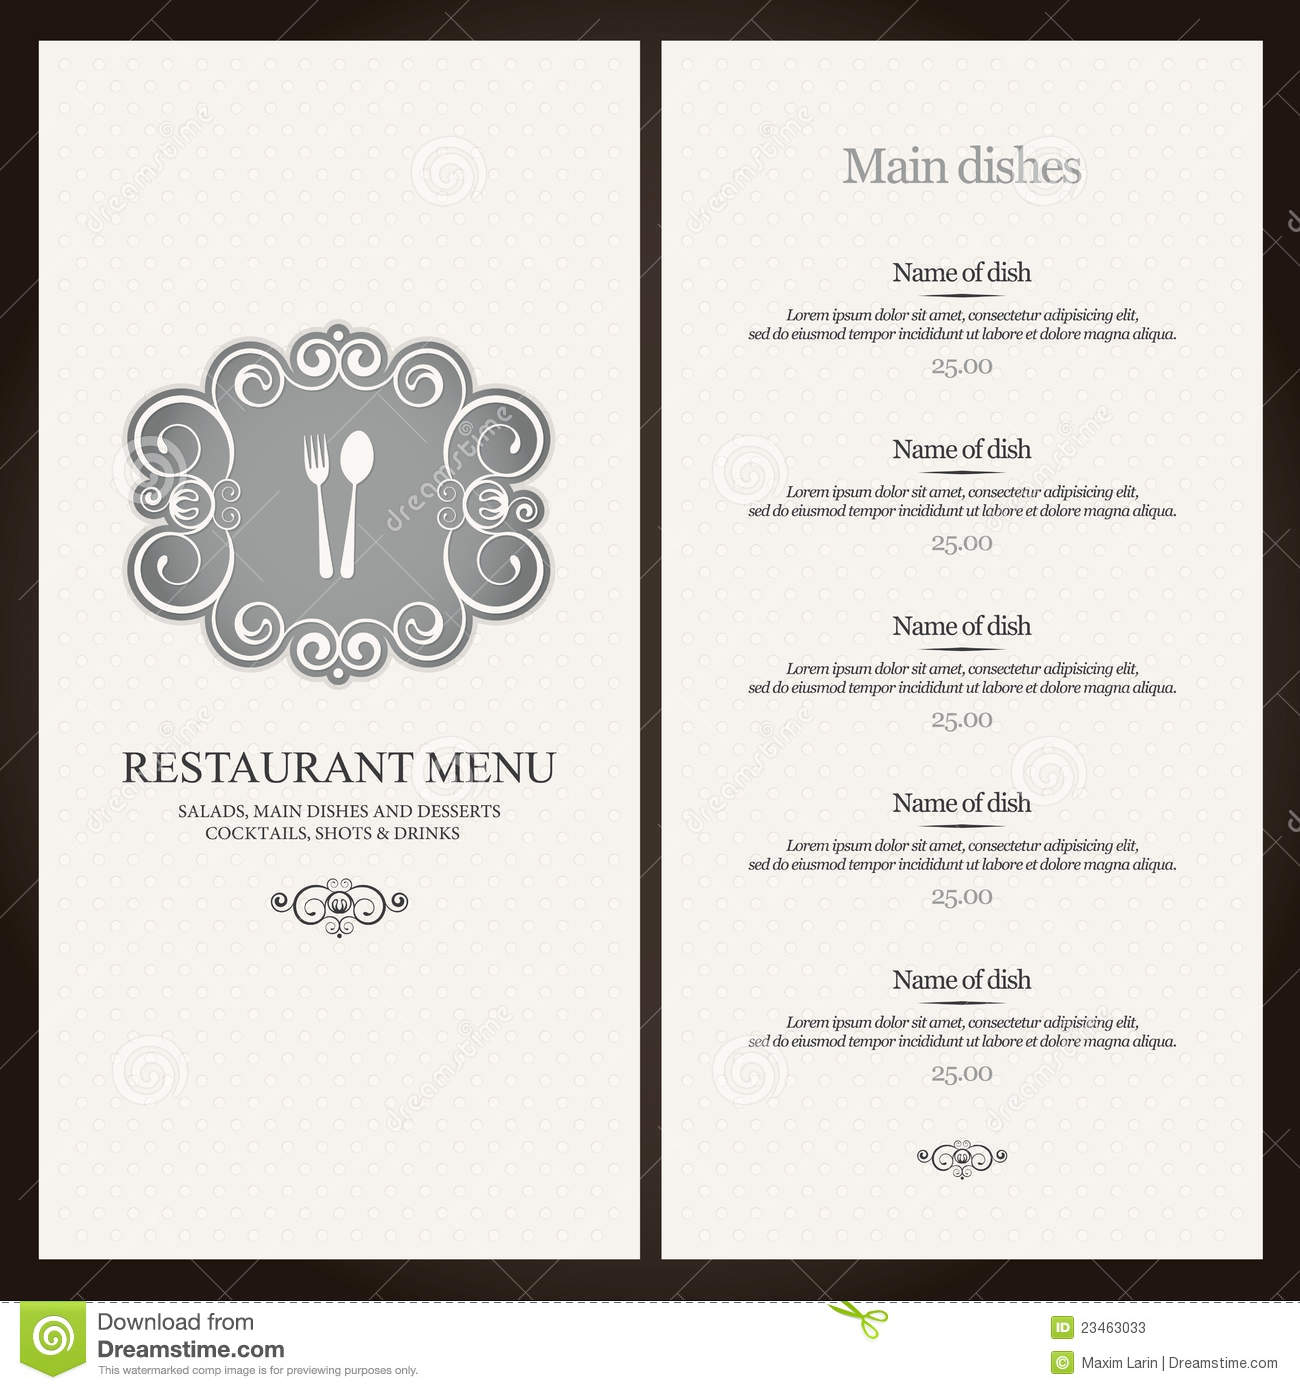 Restaurant Menu Design. Brochure, Background.